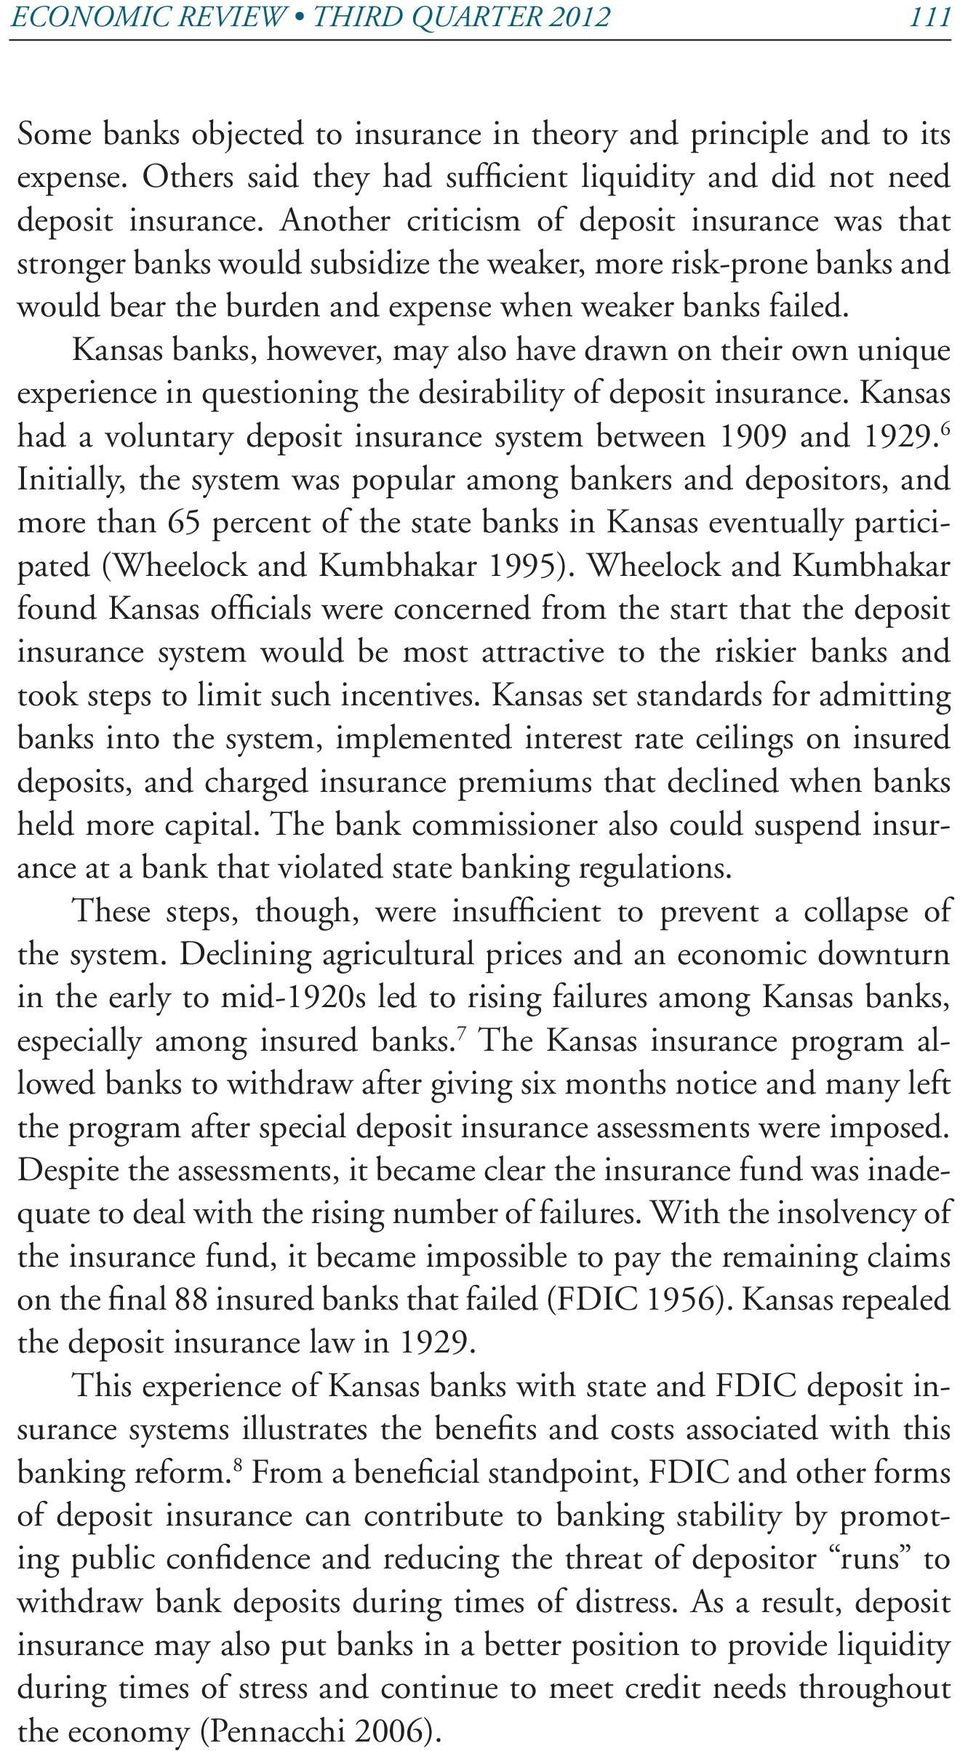 Kansas banks, however, may also have drawn on their own unique experience in questioning the desirability of deposit insurance. Kansas had a voluntary deposit insurance system between 1909 and 1929.